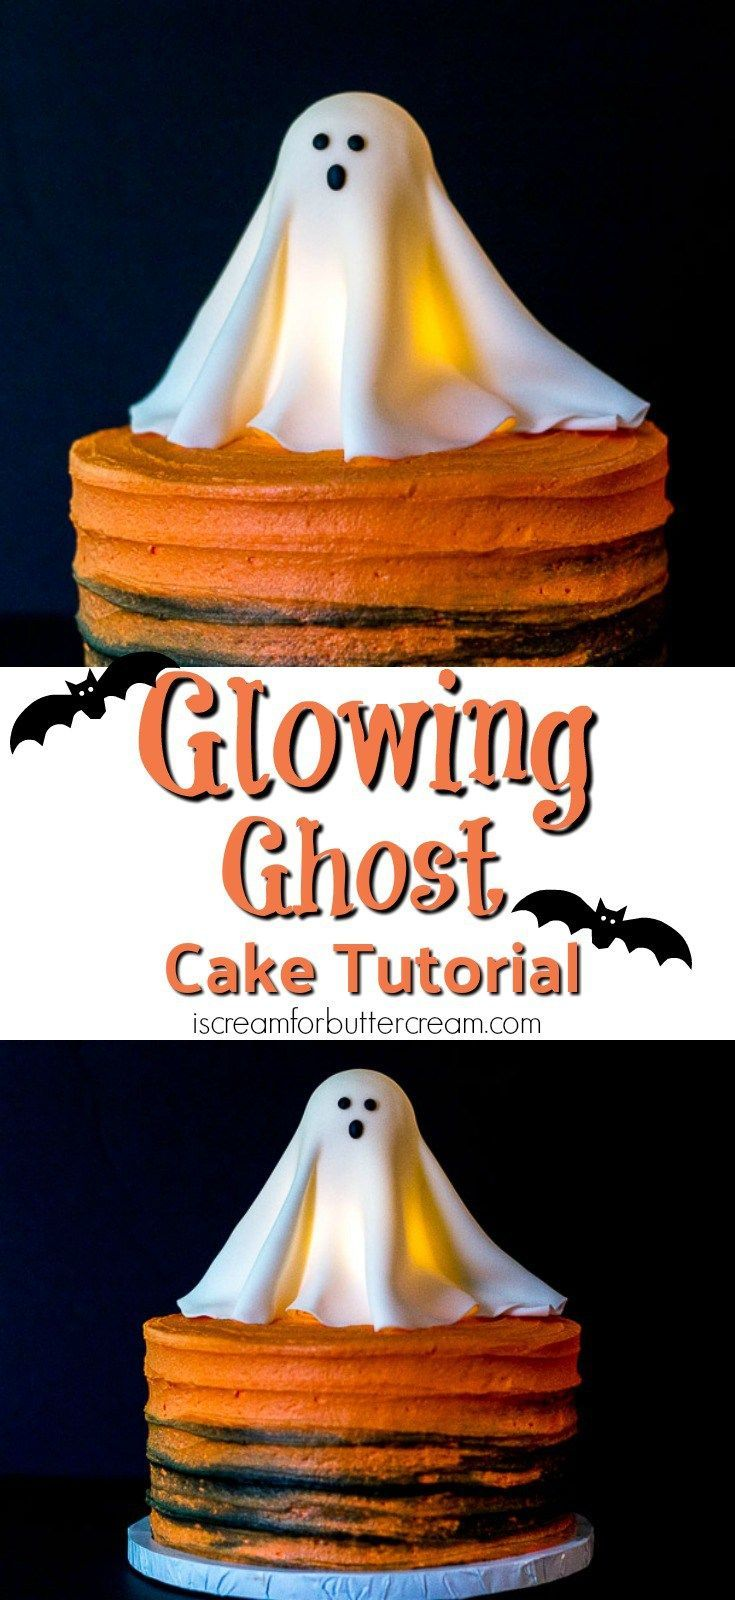 This Halloween, go all out with this Glowing Ghost Cake. It's a real show stopper that looks hard to make, but is surprisingly easy. It's really eye-catching and the kids will love it. And yes, it's really lit from within. #Halloweencakes